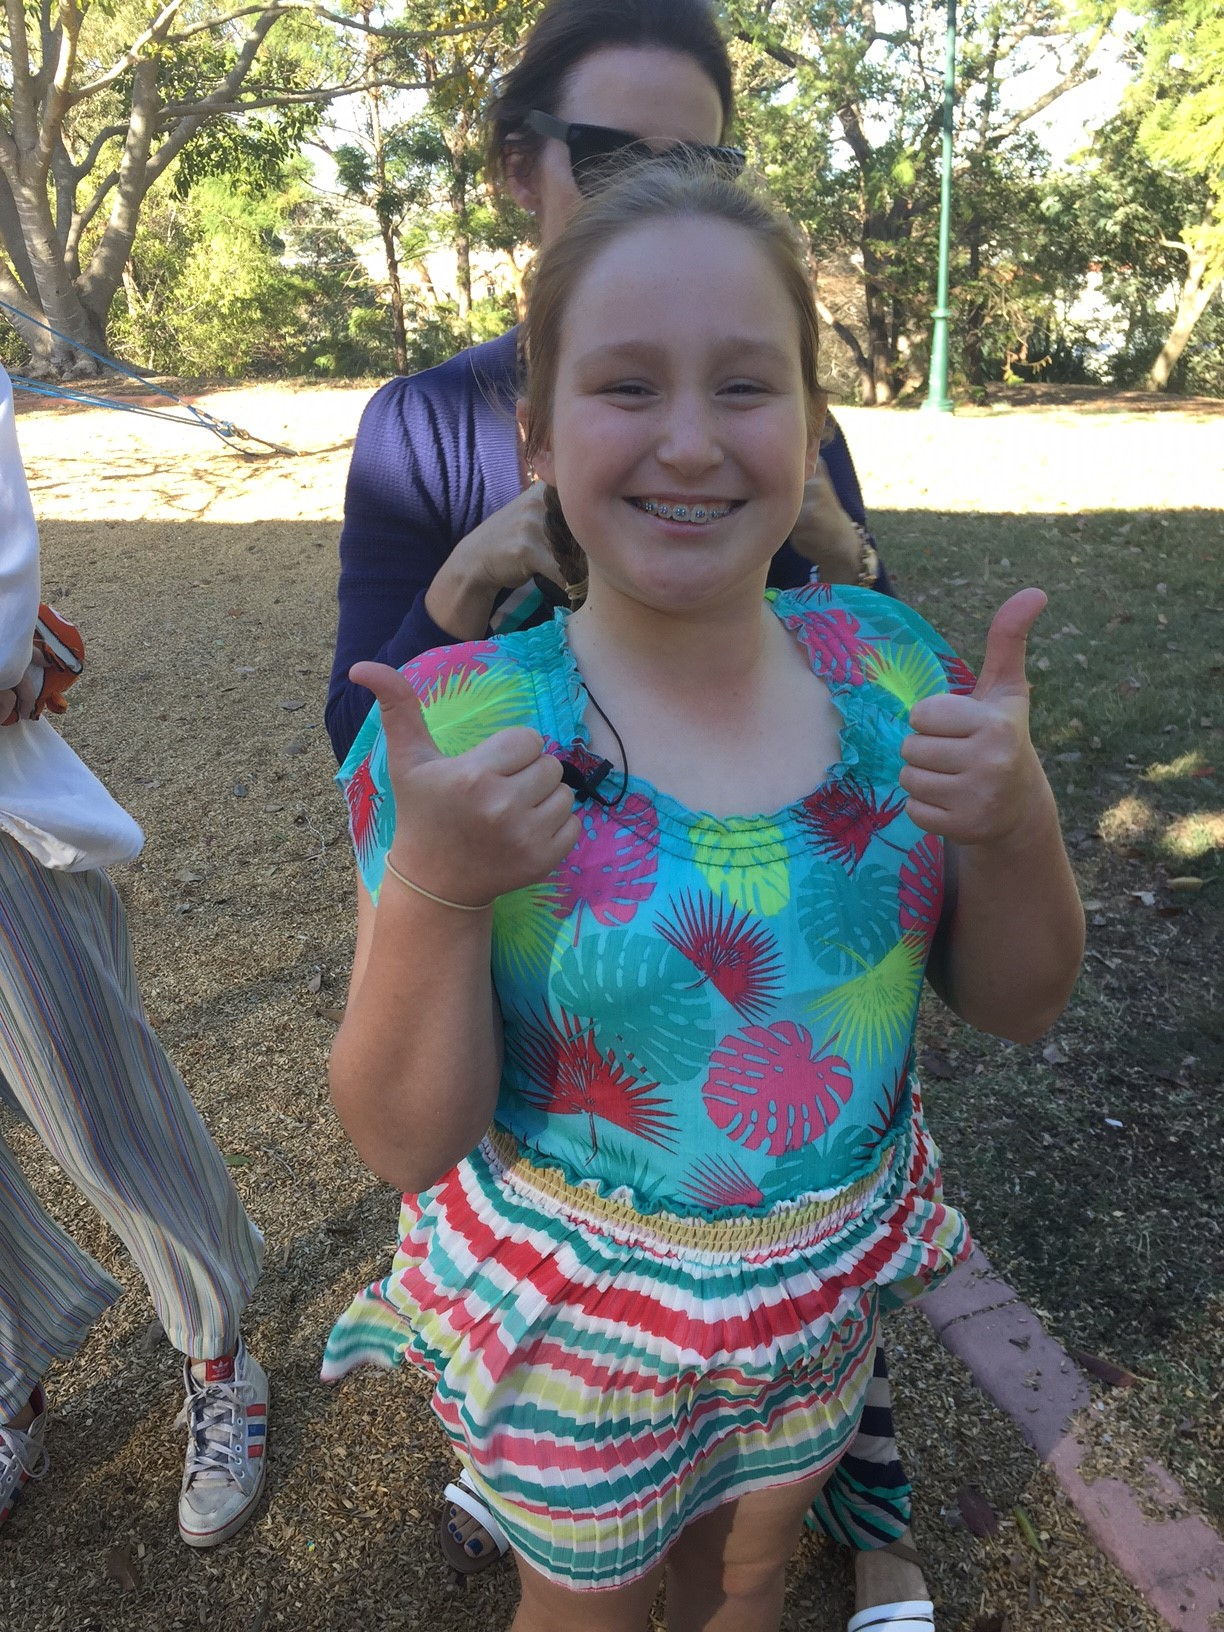 11 year old wants Ellen DeGeneres to save the Barrier Reef.